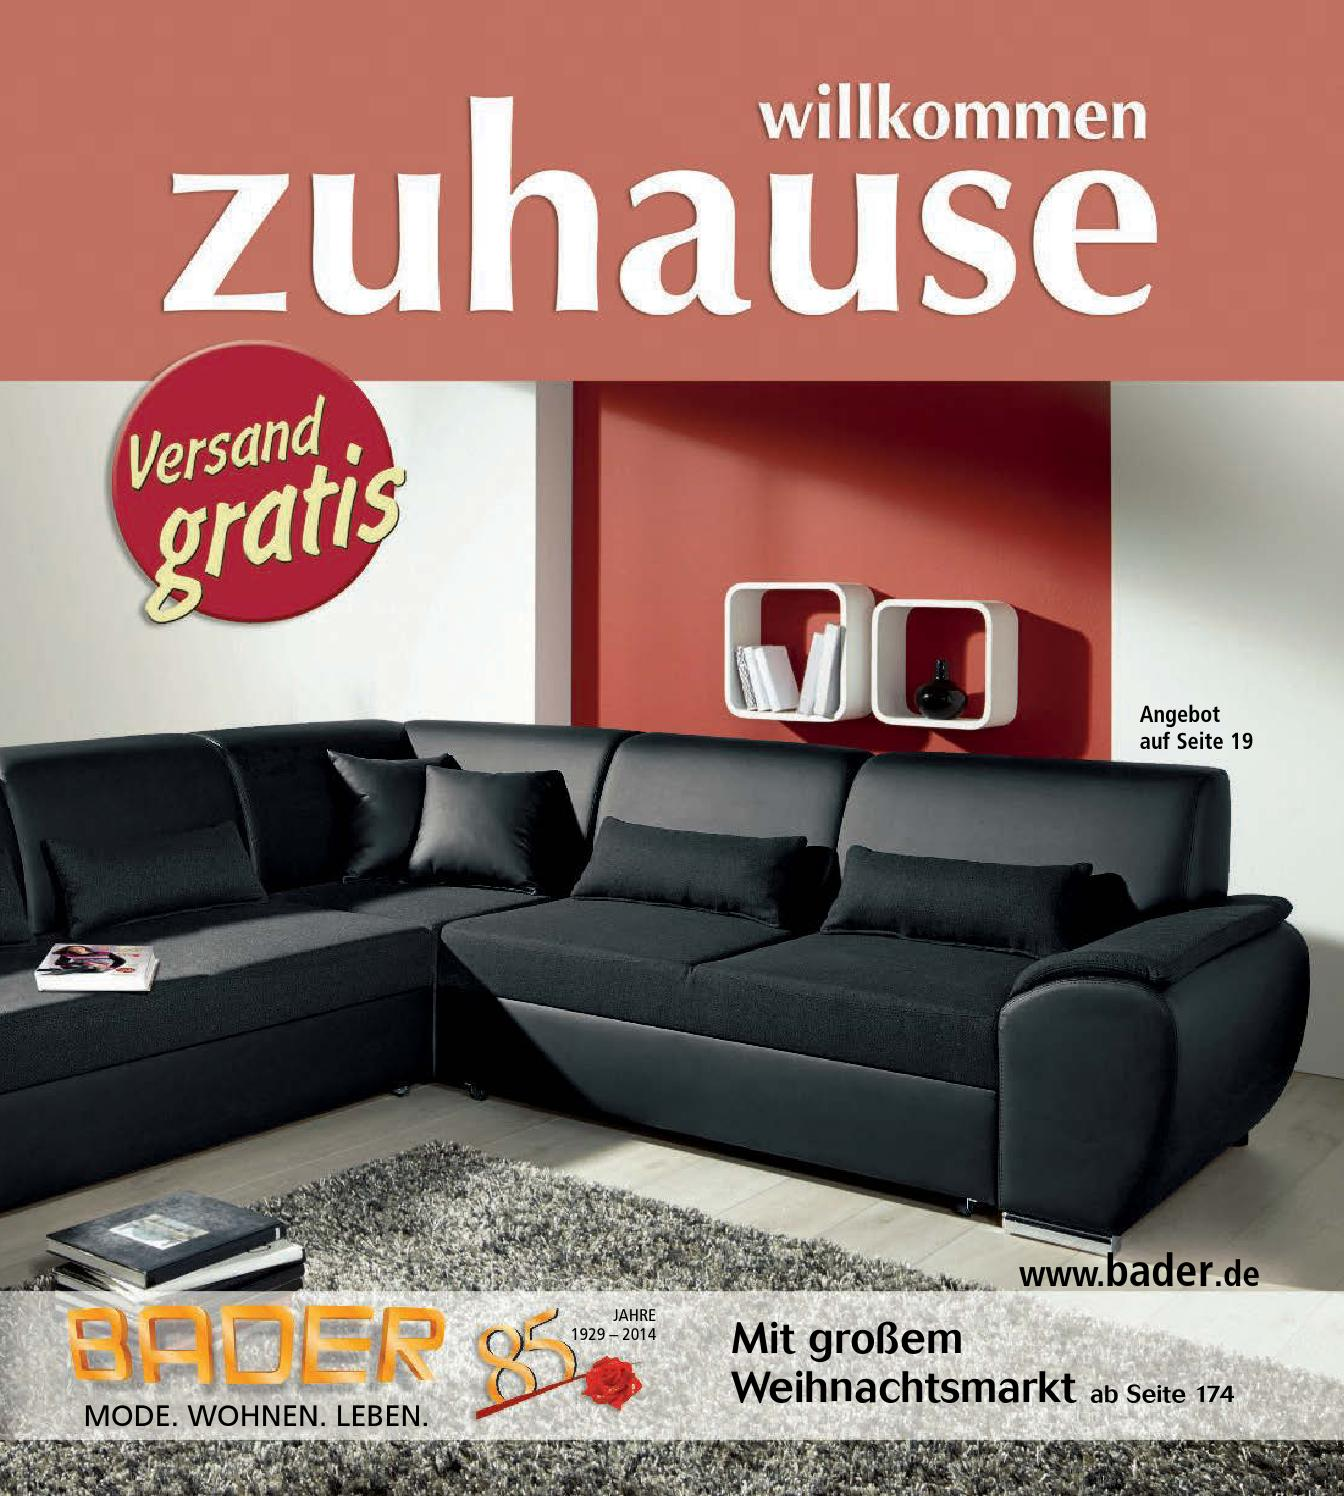 bader zuhause by 1001katalog issuu. Black Bedroom Furniture Sets. Home Design Ideas